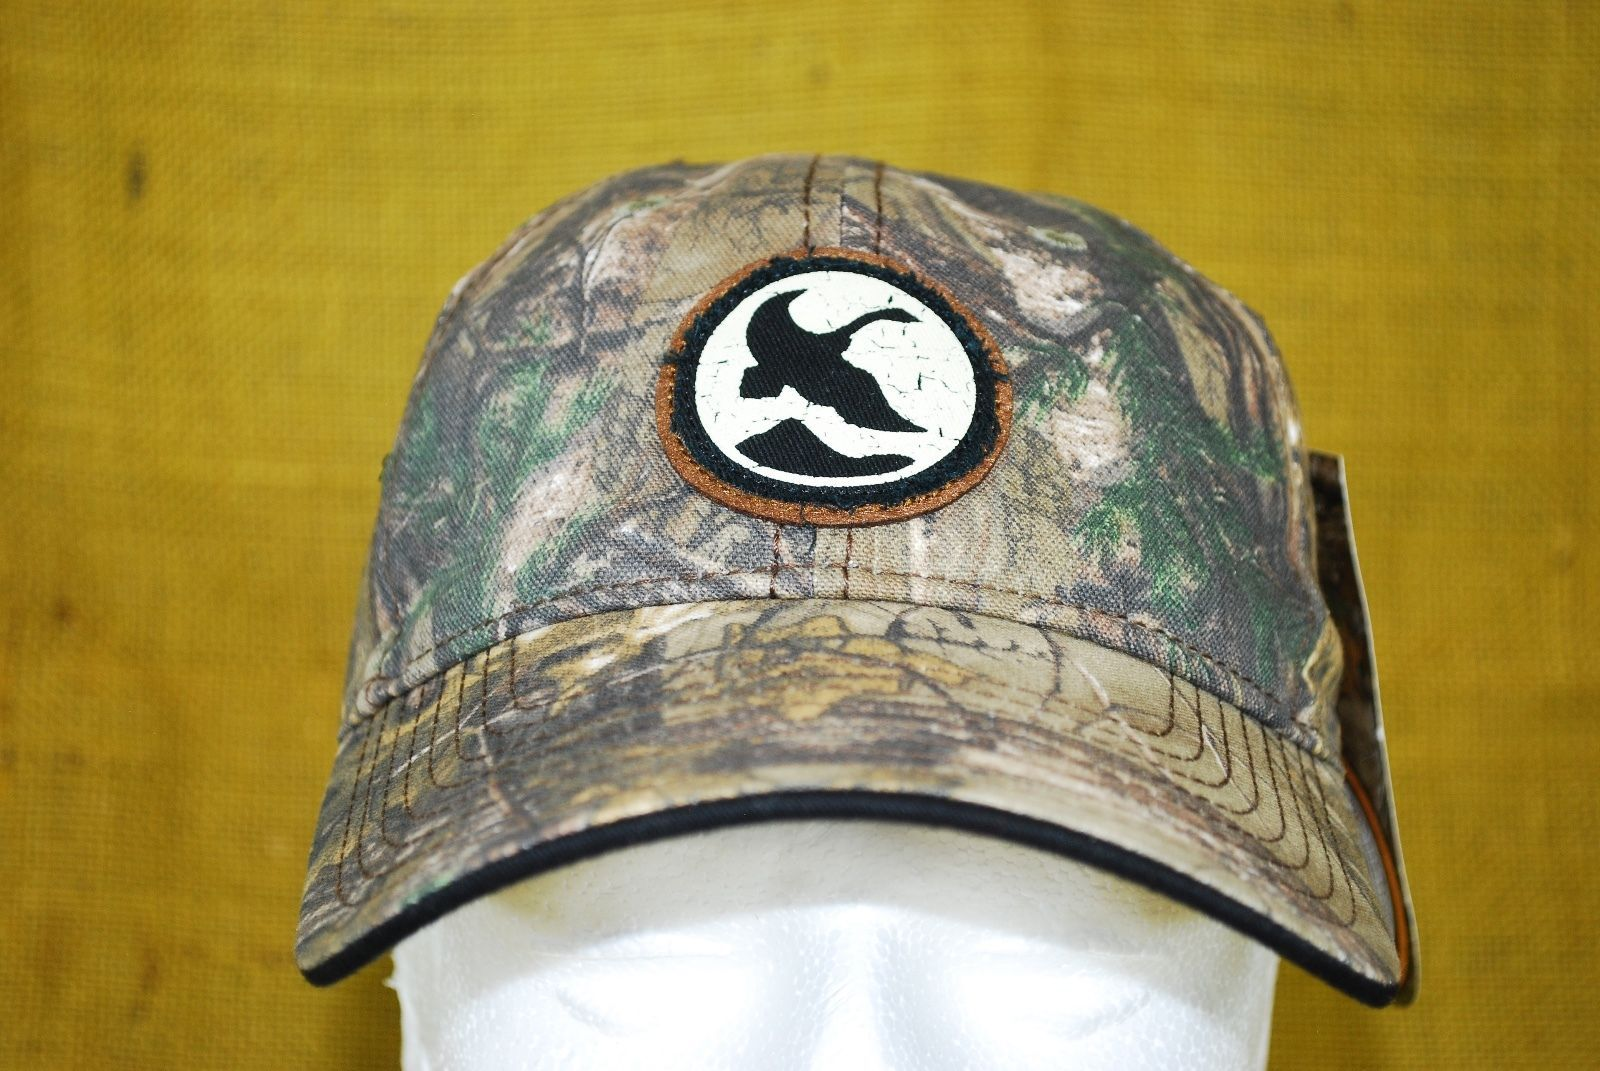 aed1073b0334b NEW Gander Mountain Hat Realtree Camouflage Camo Men s Hunting Adjustable  Cap